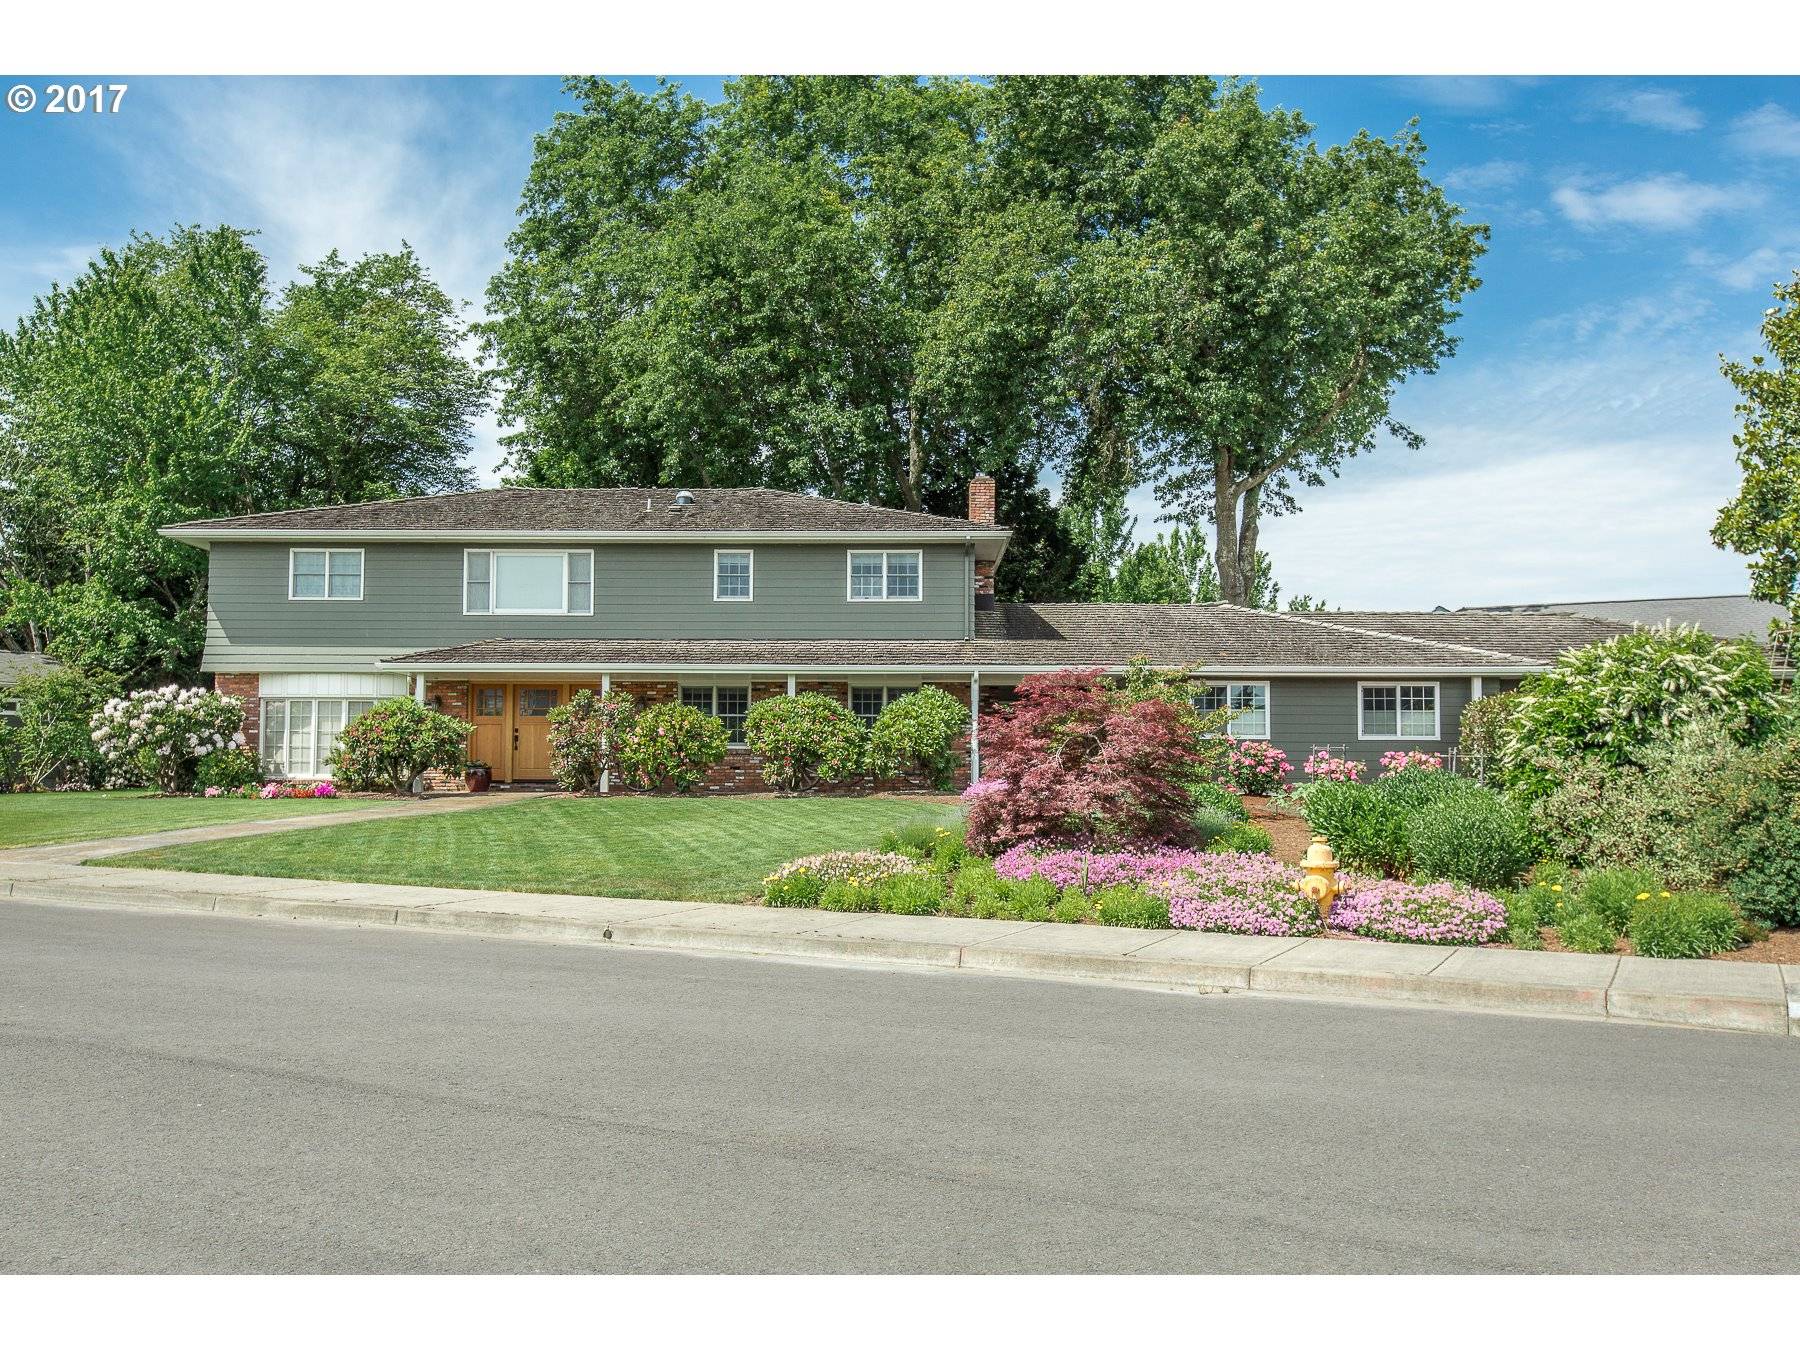 1179 UNITY DR, Junction City, OR 97448